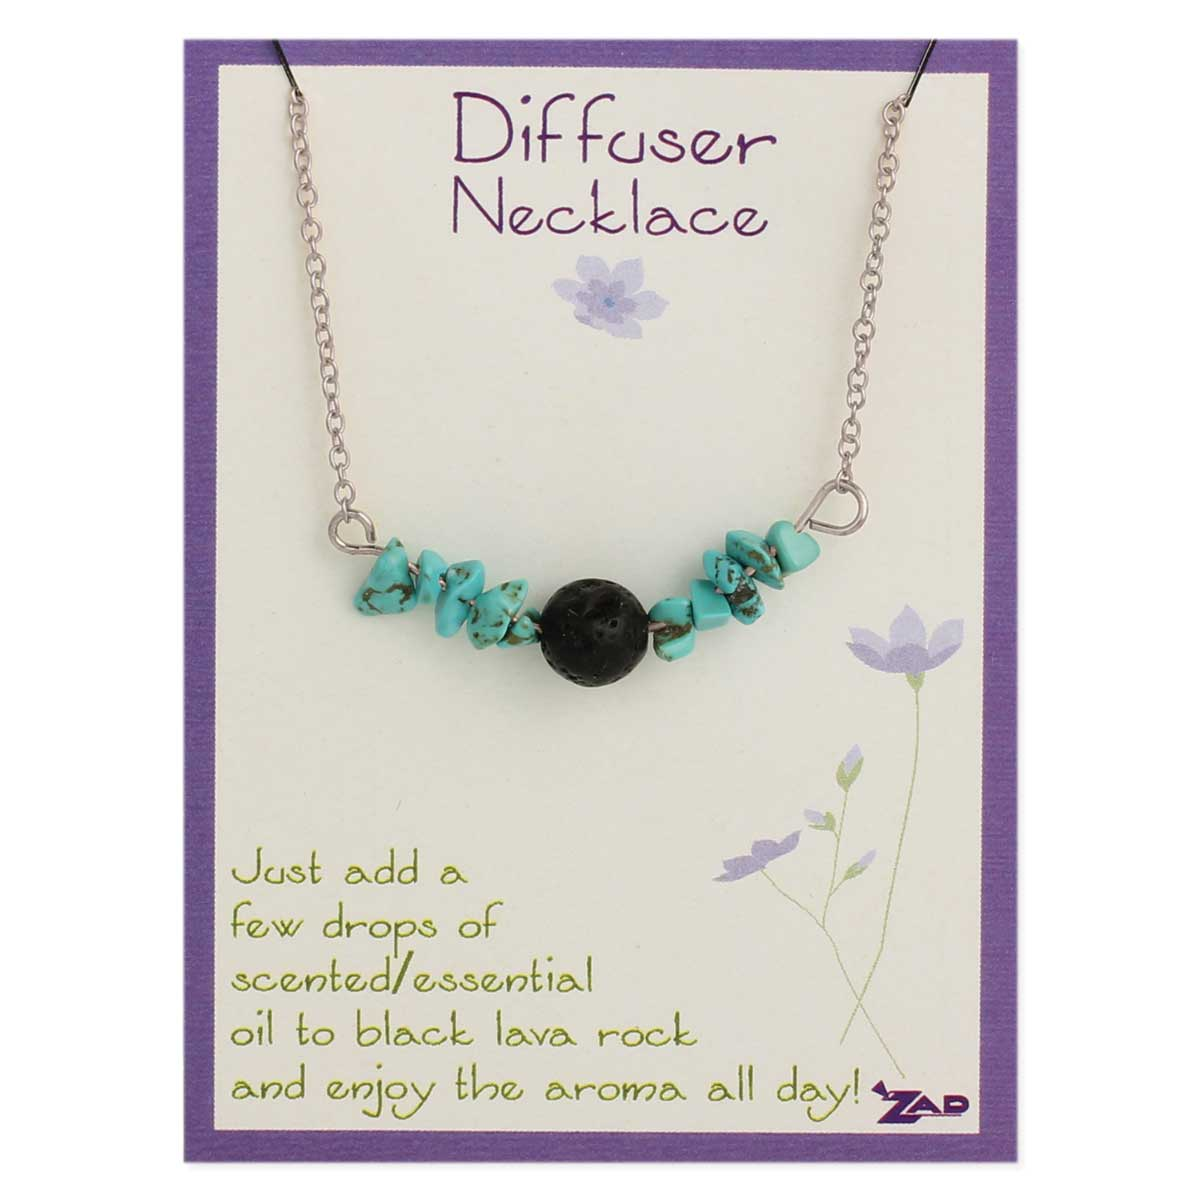 Carded Silver Turquoise & Lava Bead Diffuser Necklace